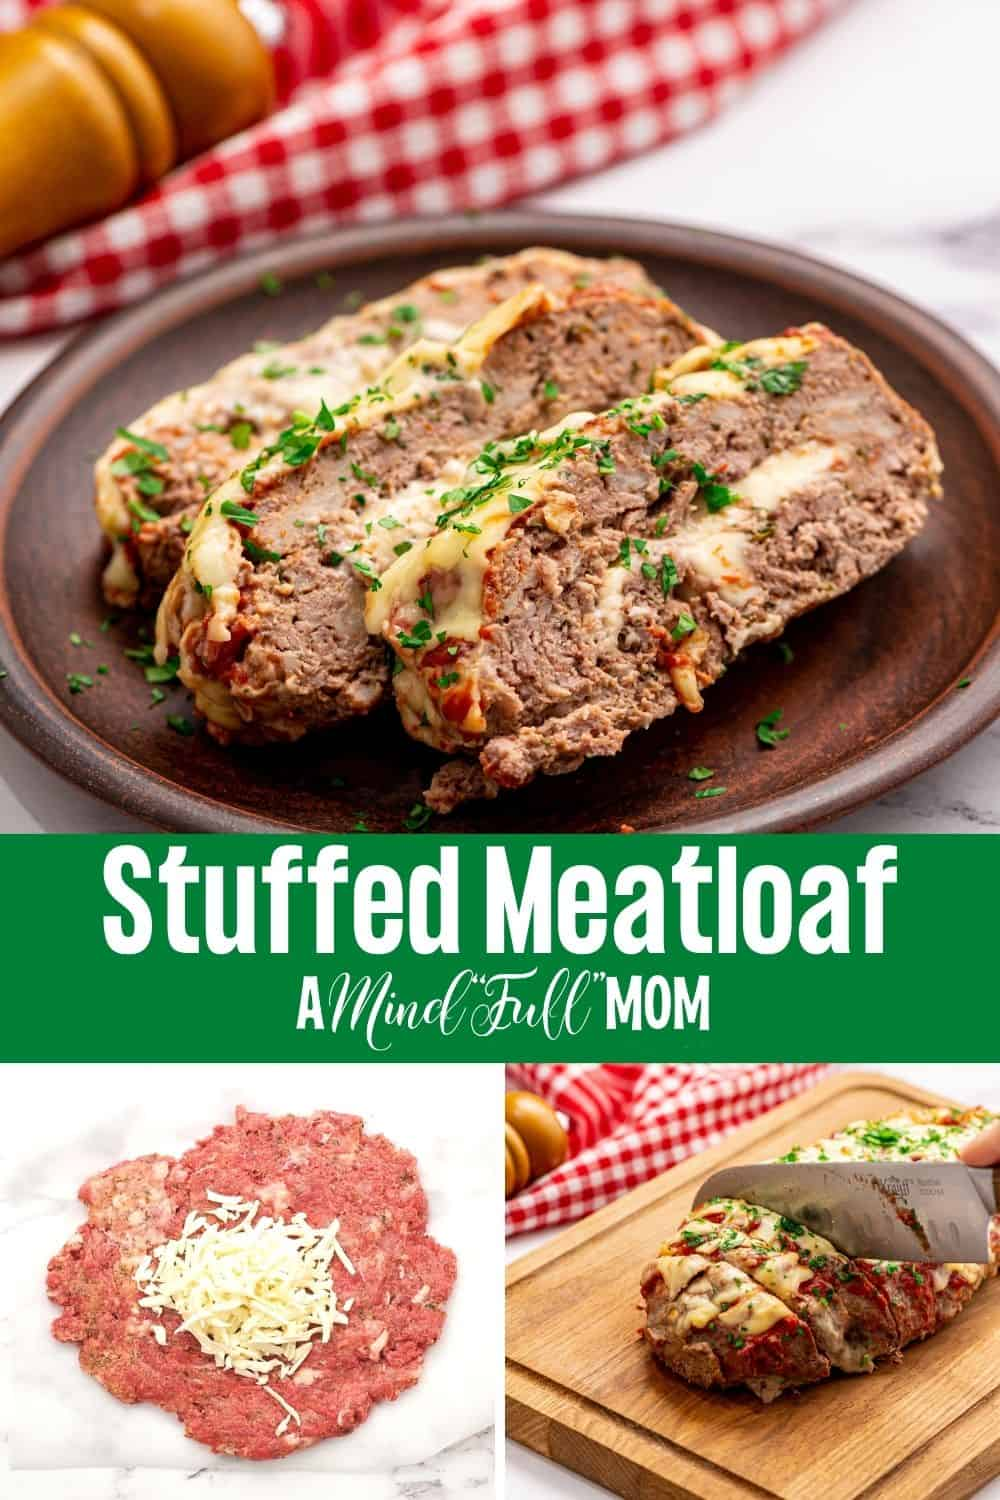 Say good-bye to boring, flavorless meatloaf and make Pizza Meatloaf instead. Made with pizza seasonings and stuffed with cheese, this recipe for Meatloaf is filled with incredible flavor and simply the best meatloaf you will ever eat!